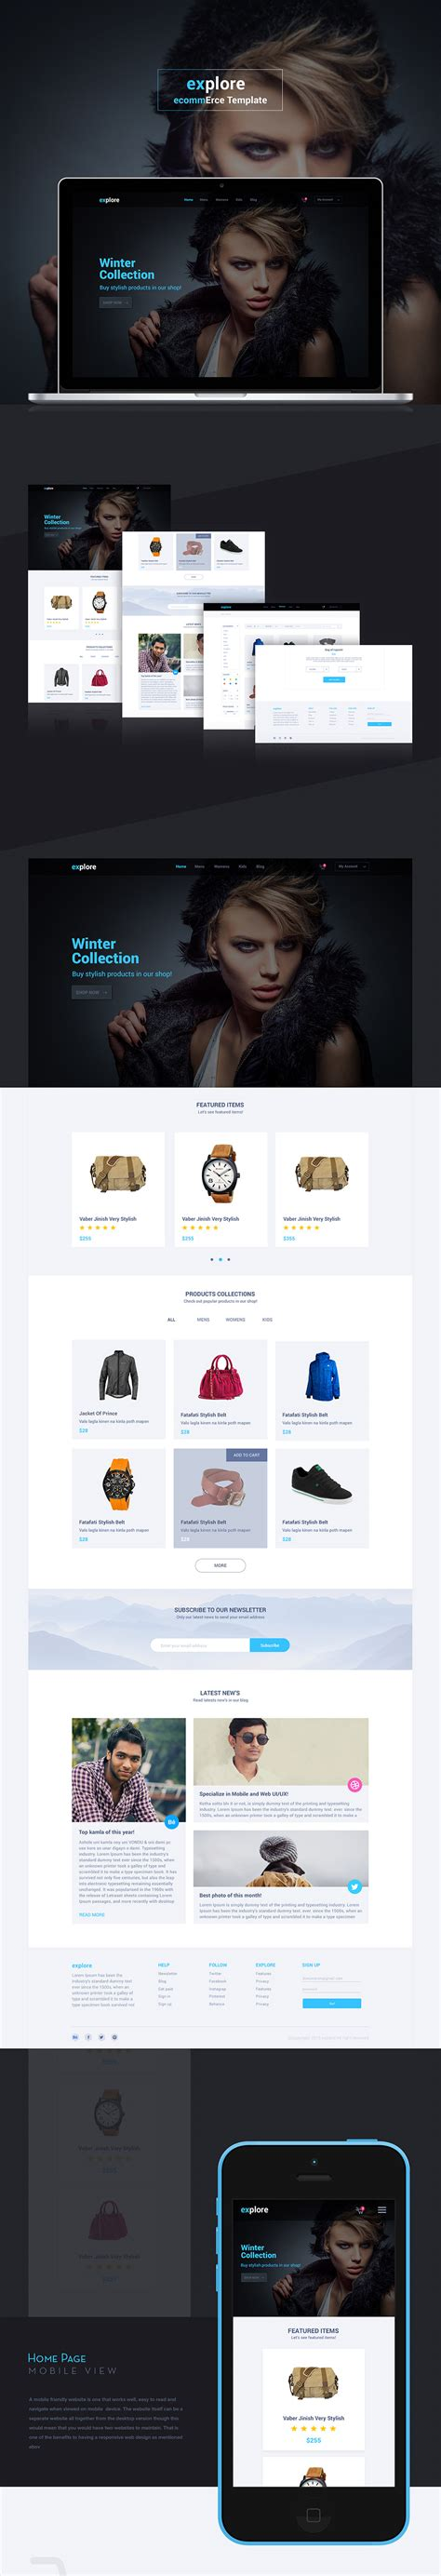 design free ecommerce website simple ecommerce website templates free psd set download